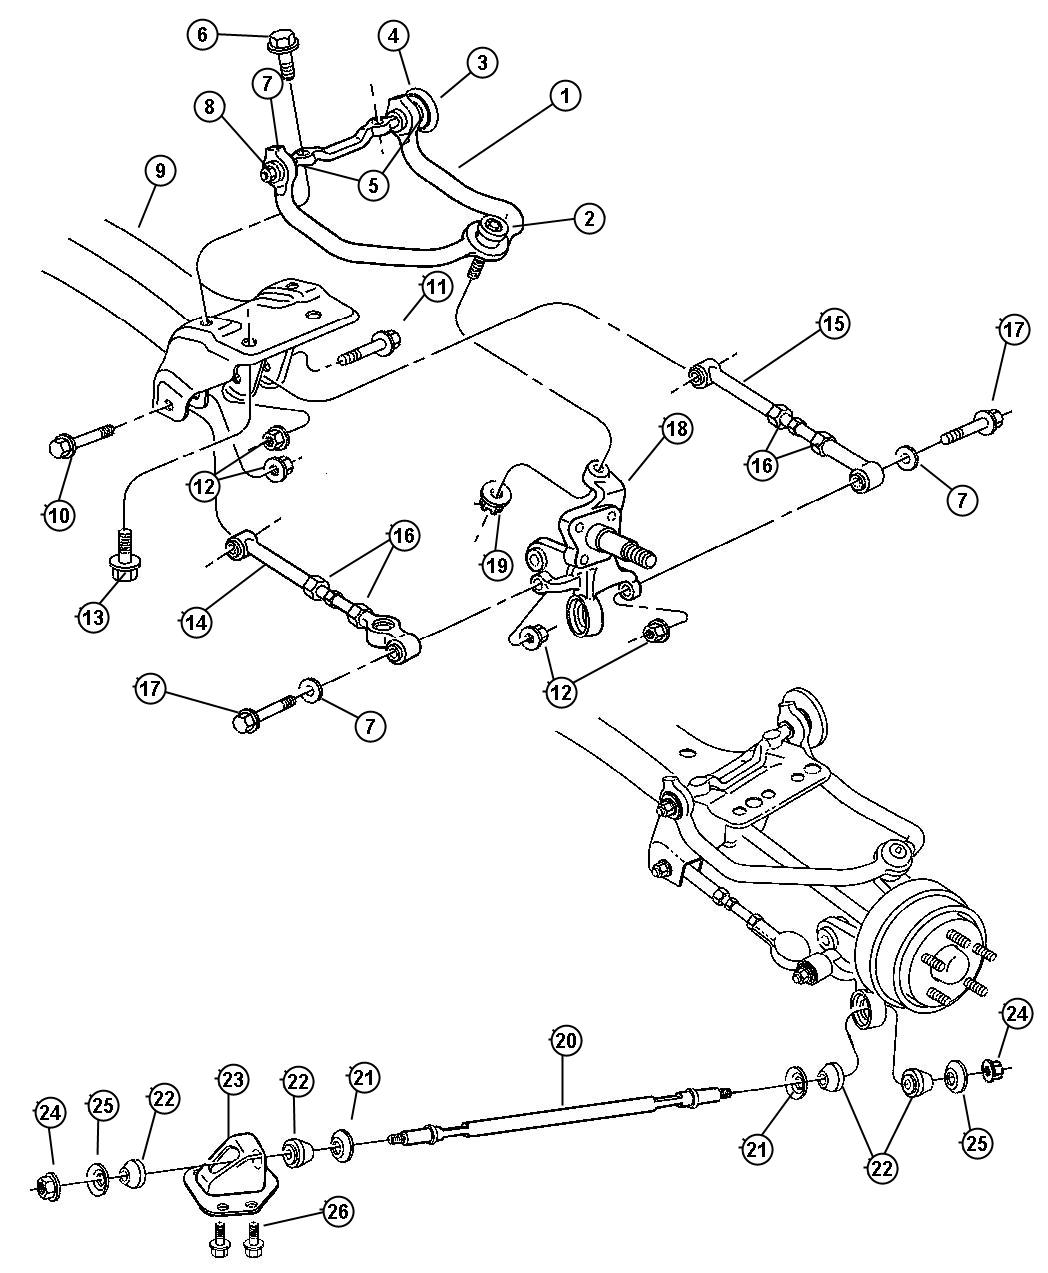 hight resolution of 2007 dodge charger engine diagram additionally 2005 dodge magnum